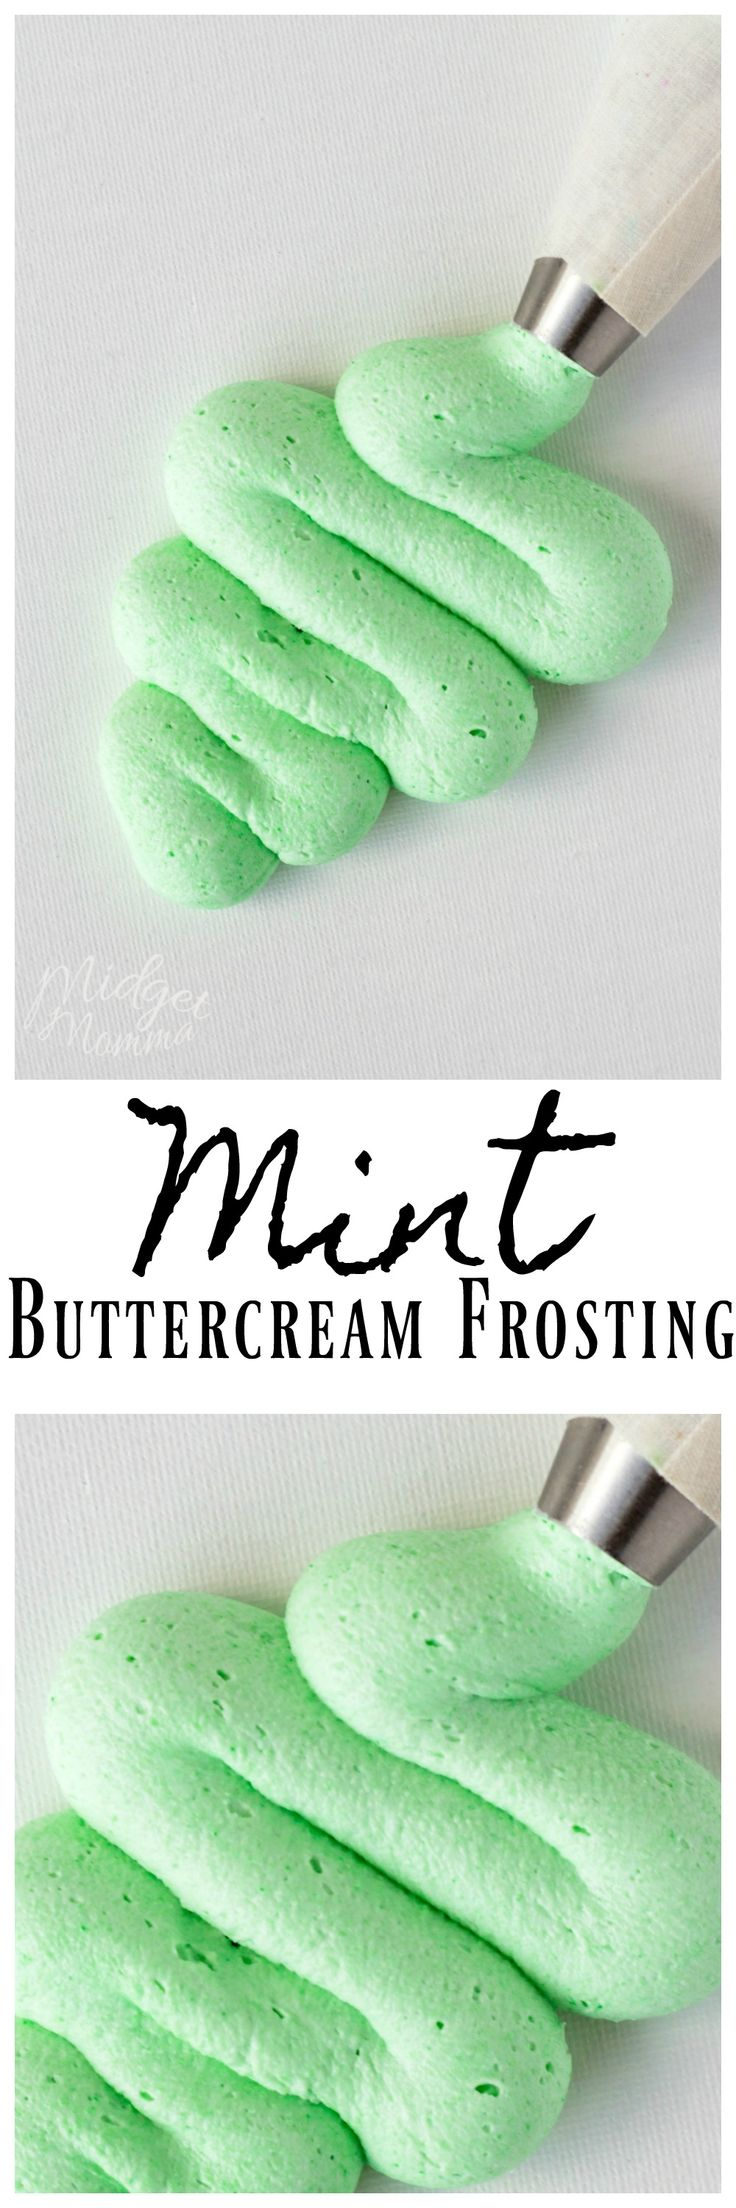 Mint Buttercream Frosting. This amazing Mint Buttercream Frosting tastes just like you get from a bakery and goes perfect with cupcakes and cake!